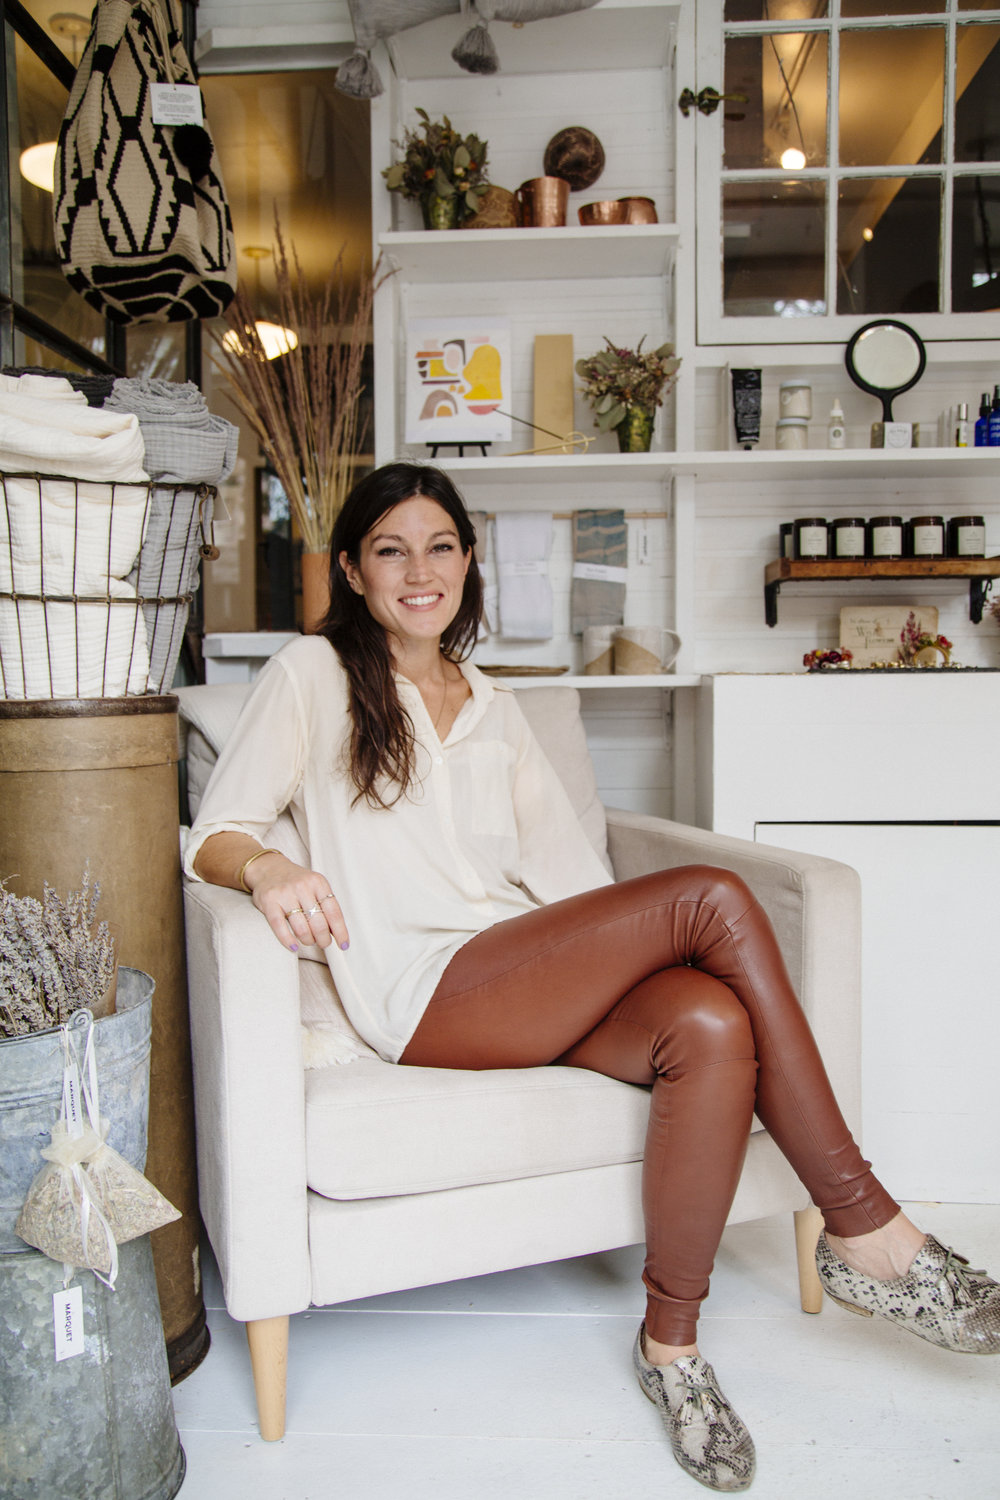 Tanya Quigley, Owner of the Marquet